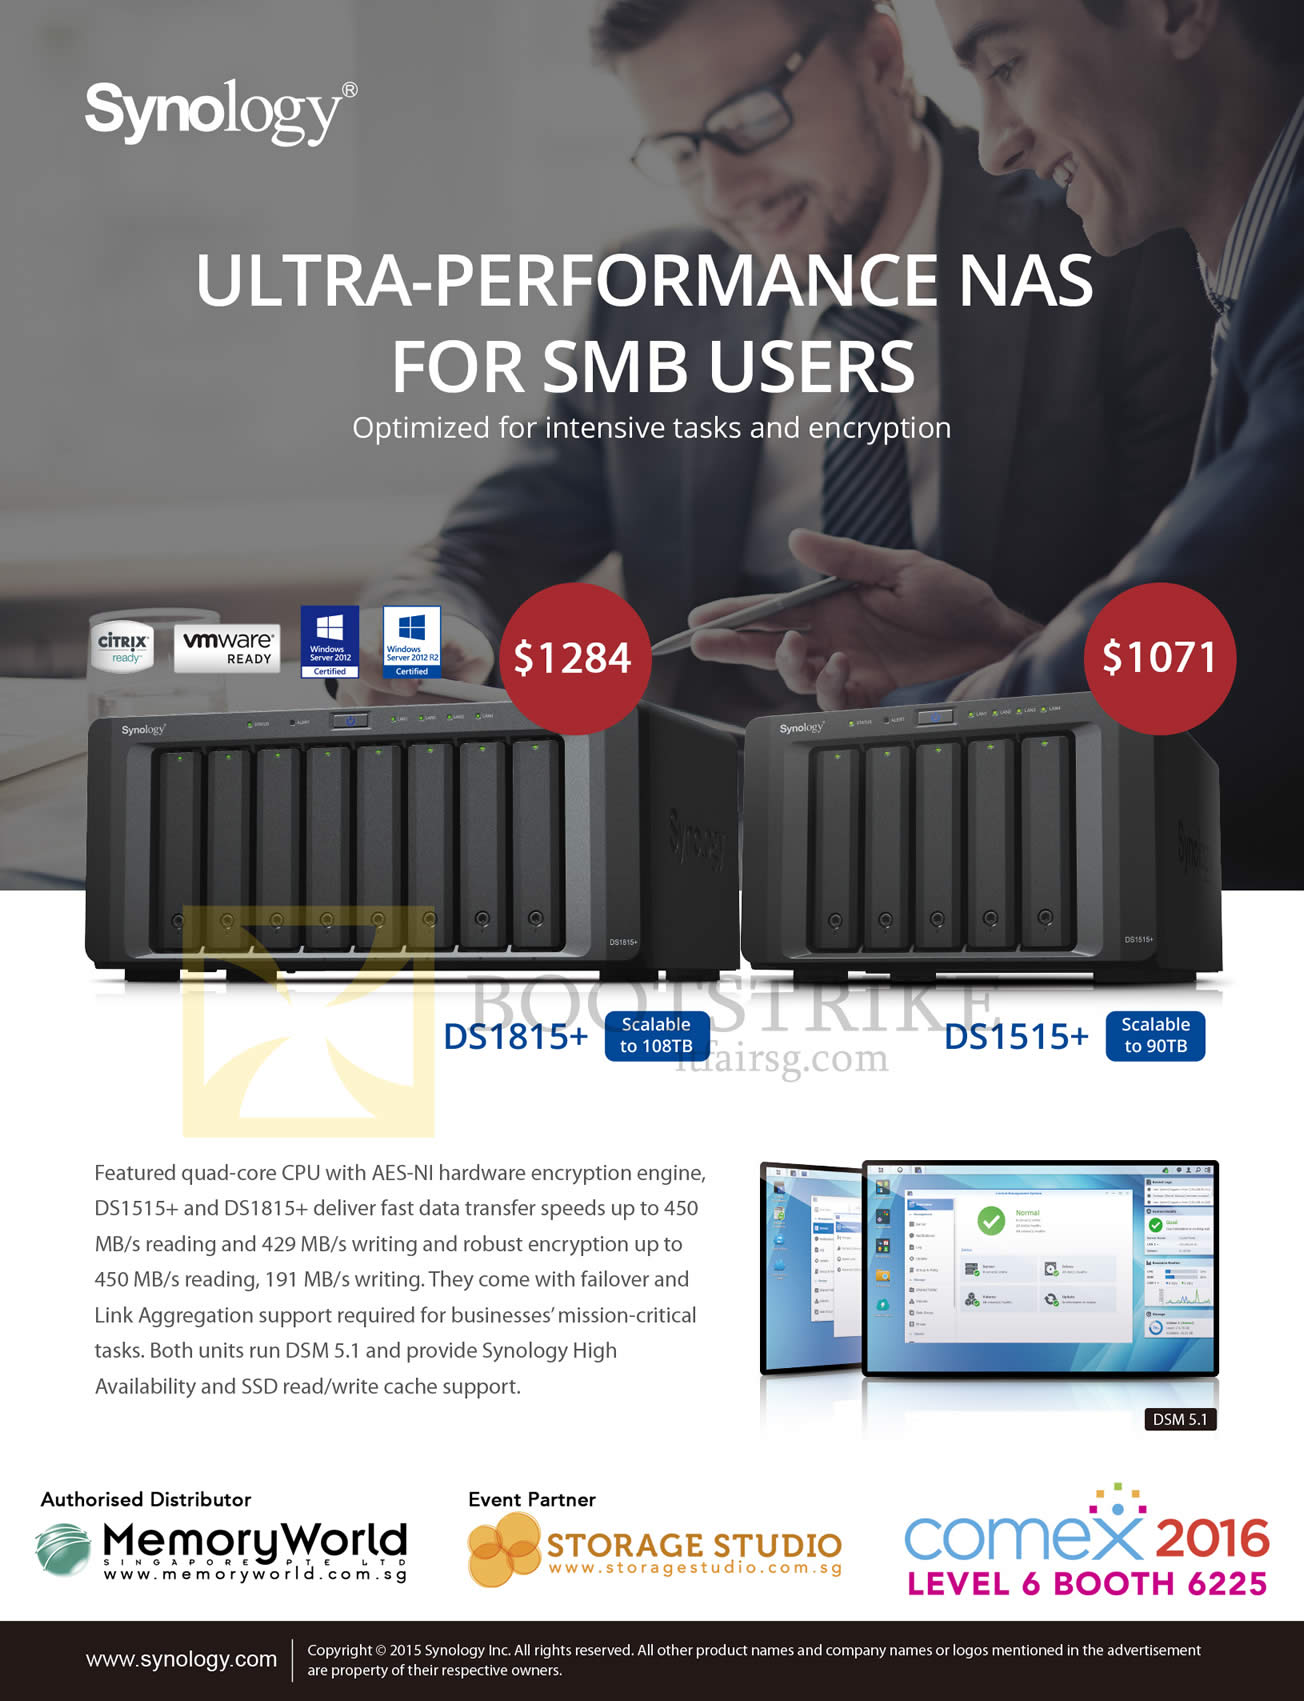 COMEX 2016 price list image brochure of Memory World Synology NAS DS1815plus, DS1515plus